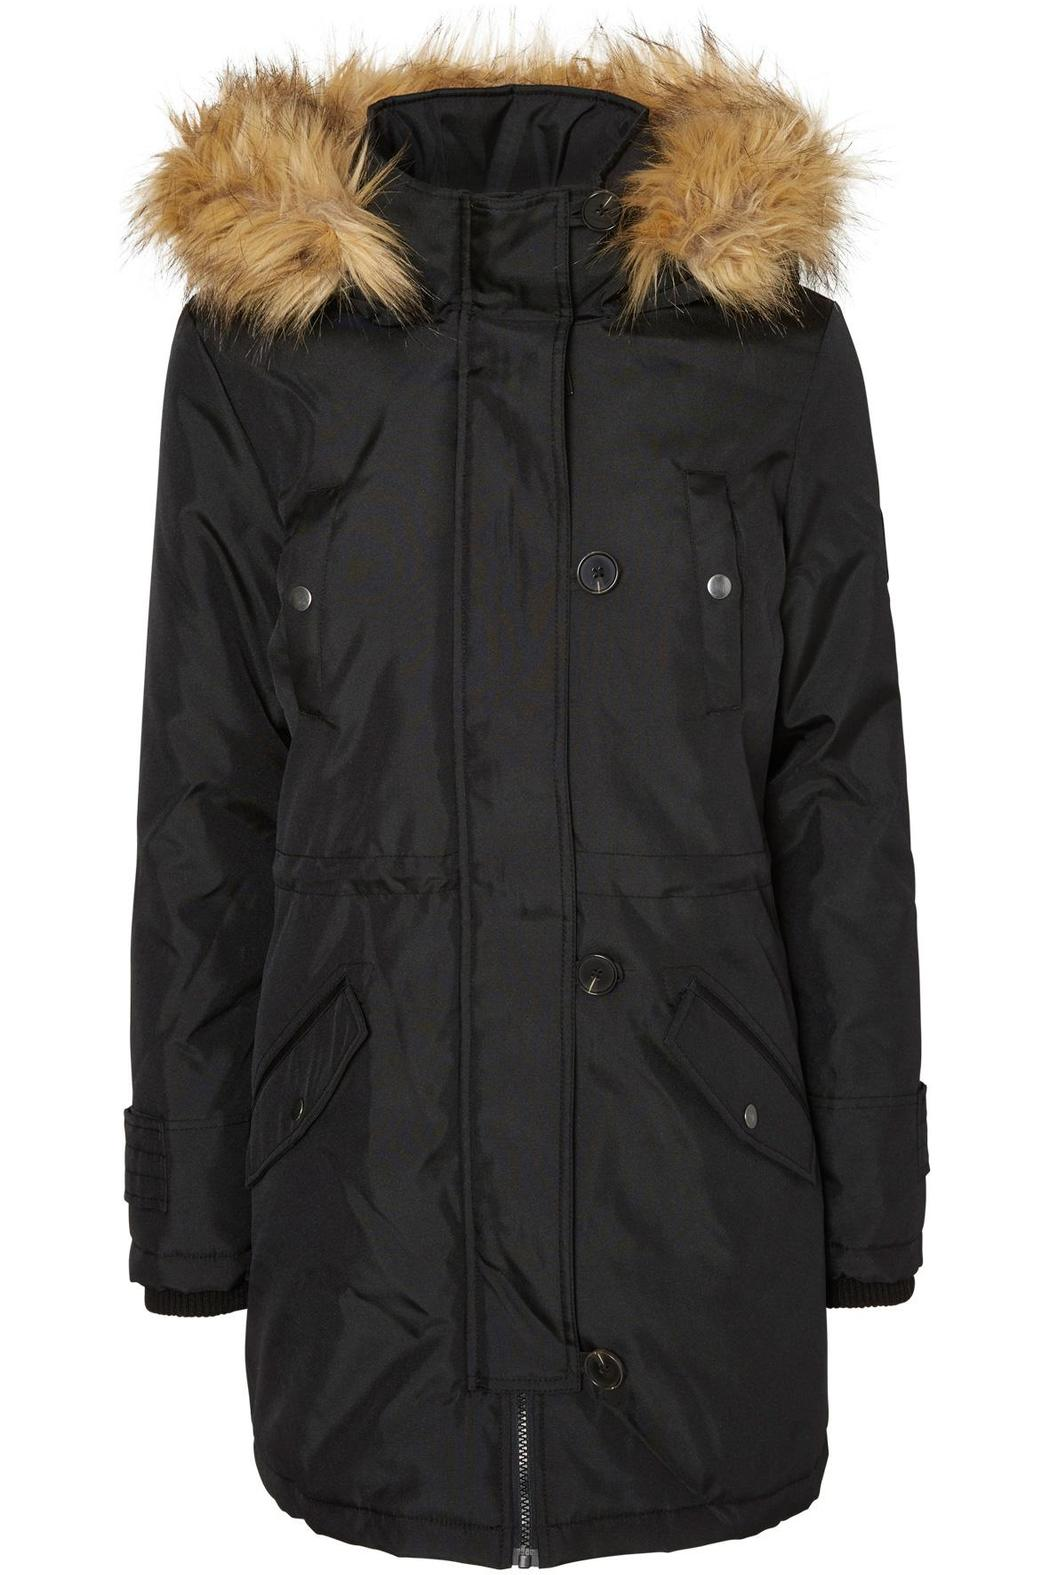 vero moda black parka from canada by bella clothing. Black Bedroom Furniture Sets. Home Design Ideas